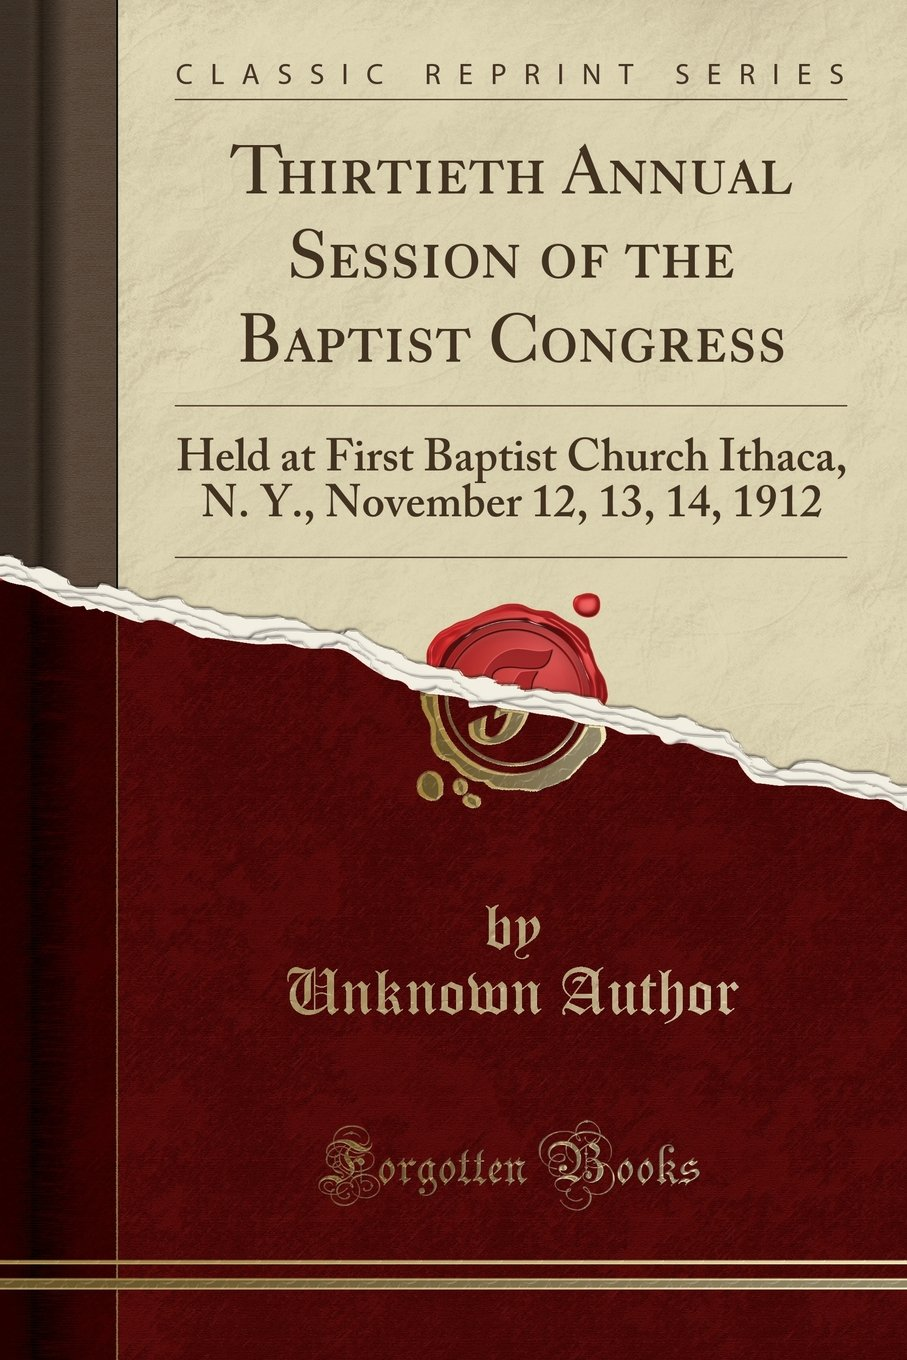 Read Online Thirtieth Annual Session of the Baptist Congress: Held at First Baptist Church Ithaca, N. Y., November 12, 13, 14, 1912 (Classic Reprint) PDF